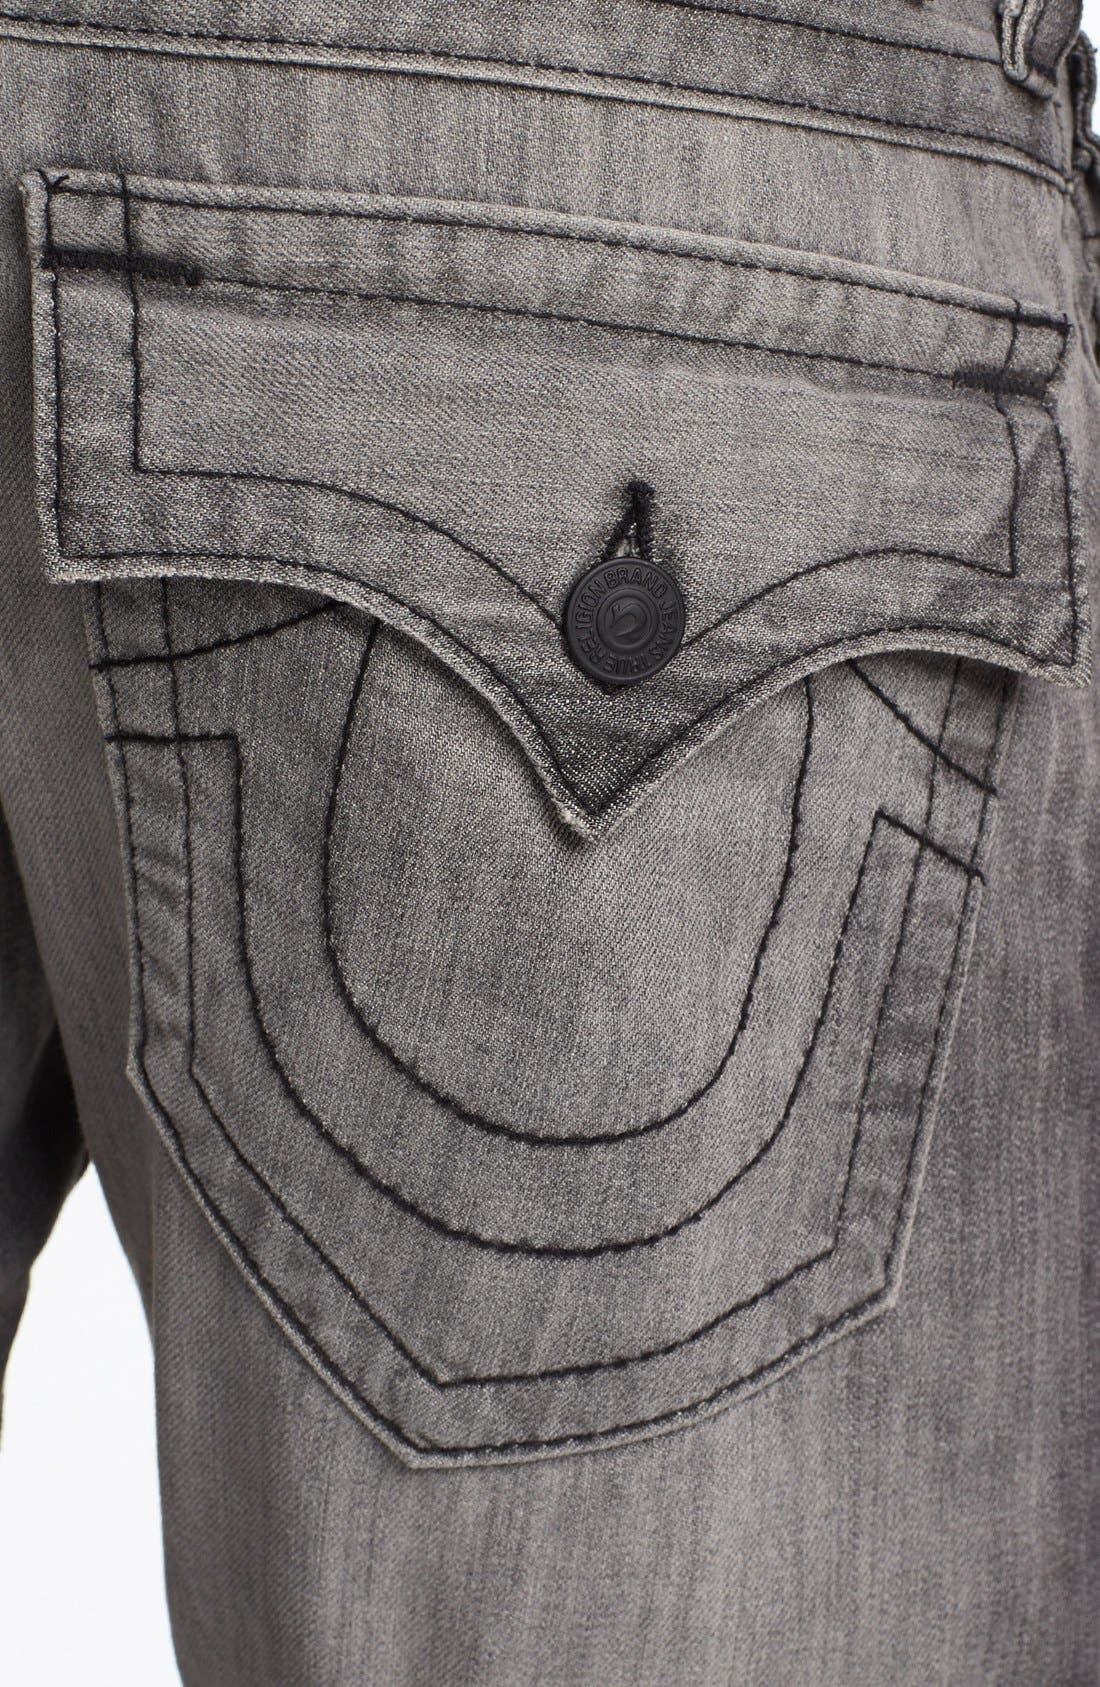 'Ricky' Relaxed Fit Jeans,                             Alternate thumbnail 14, color,